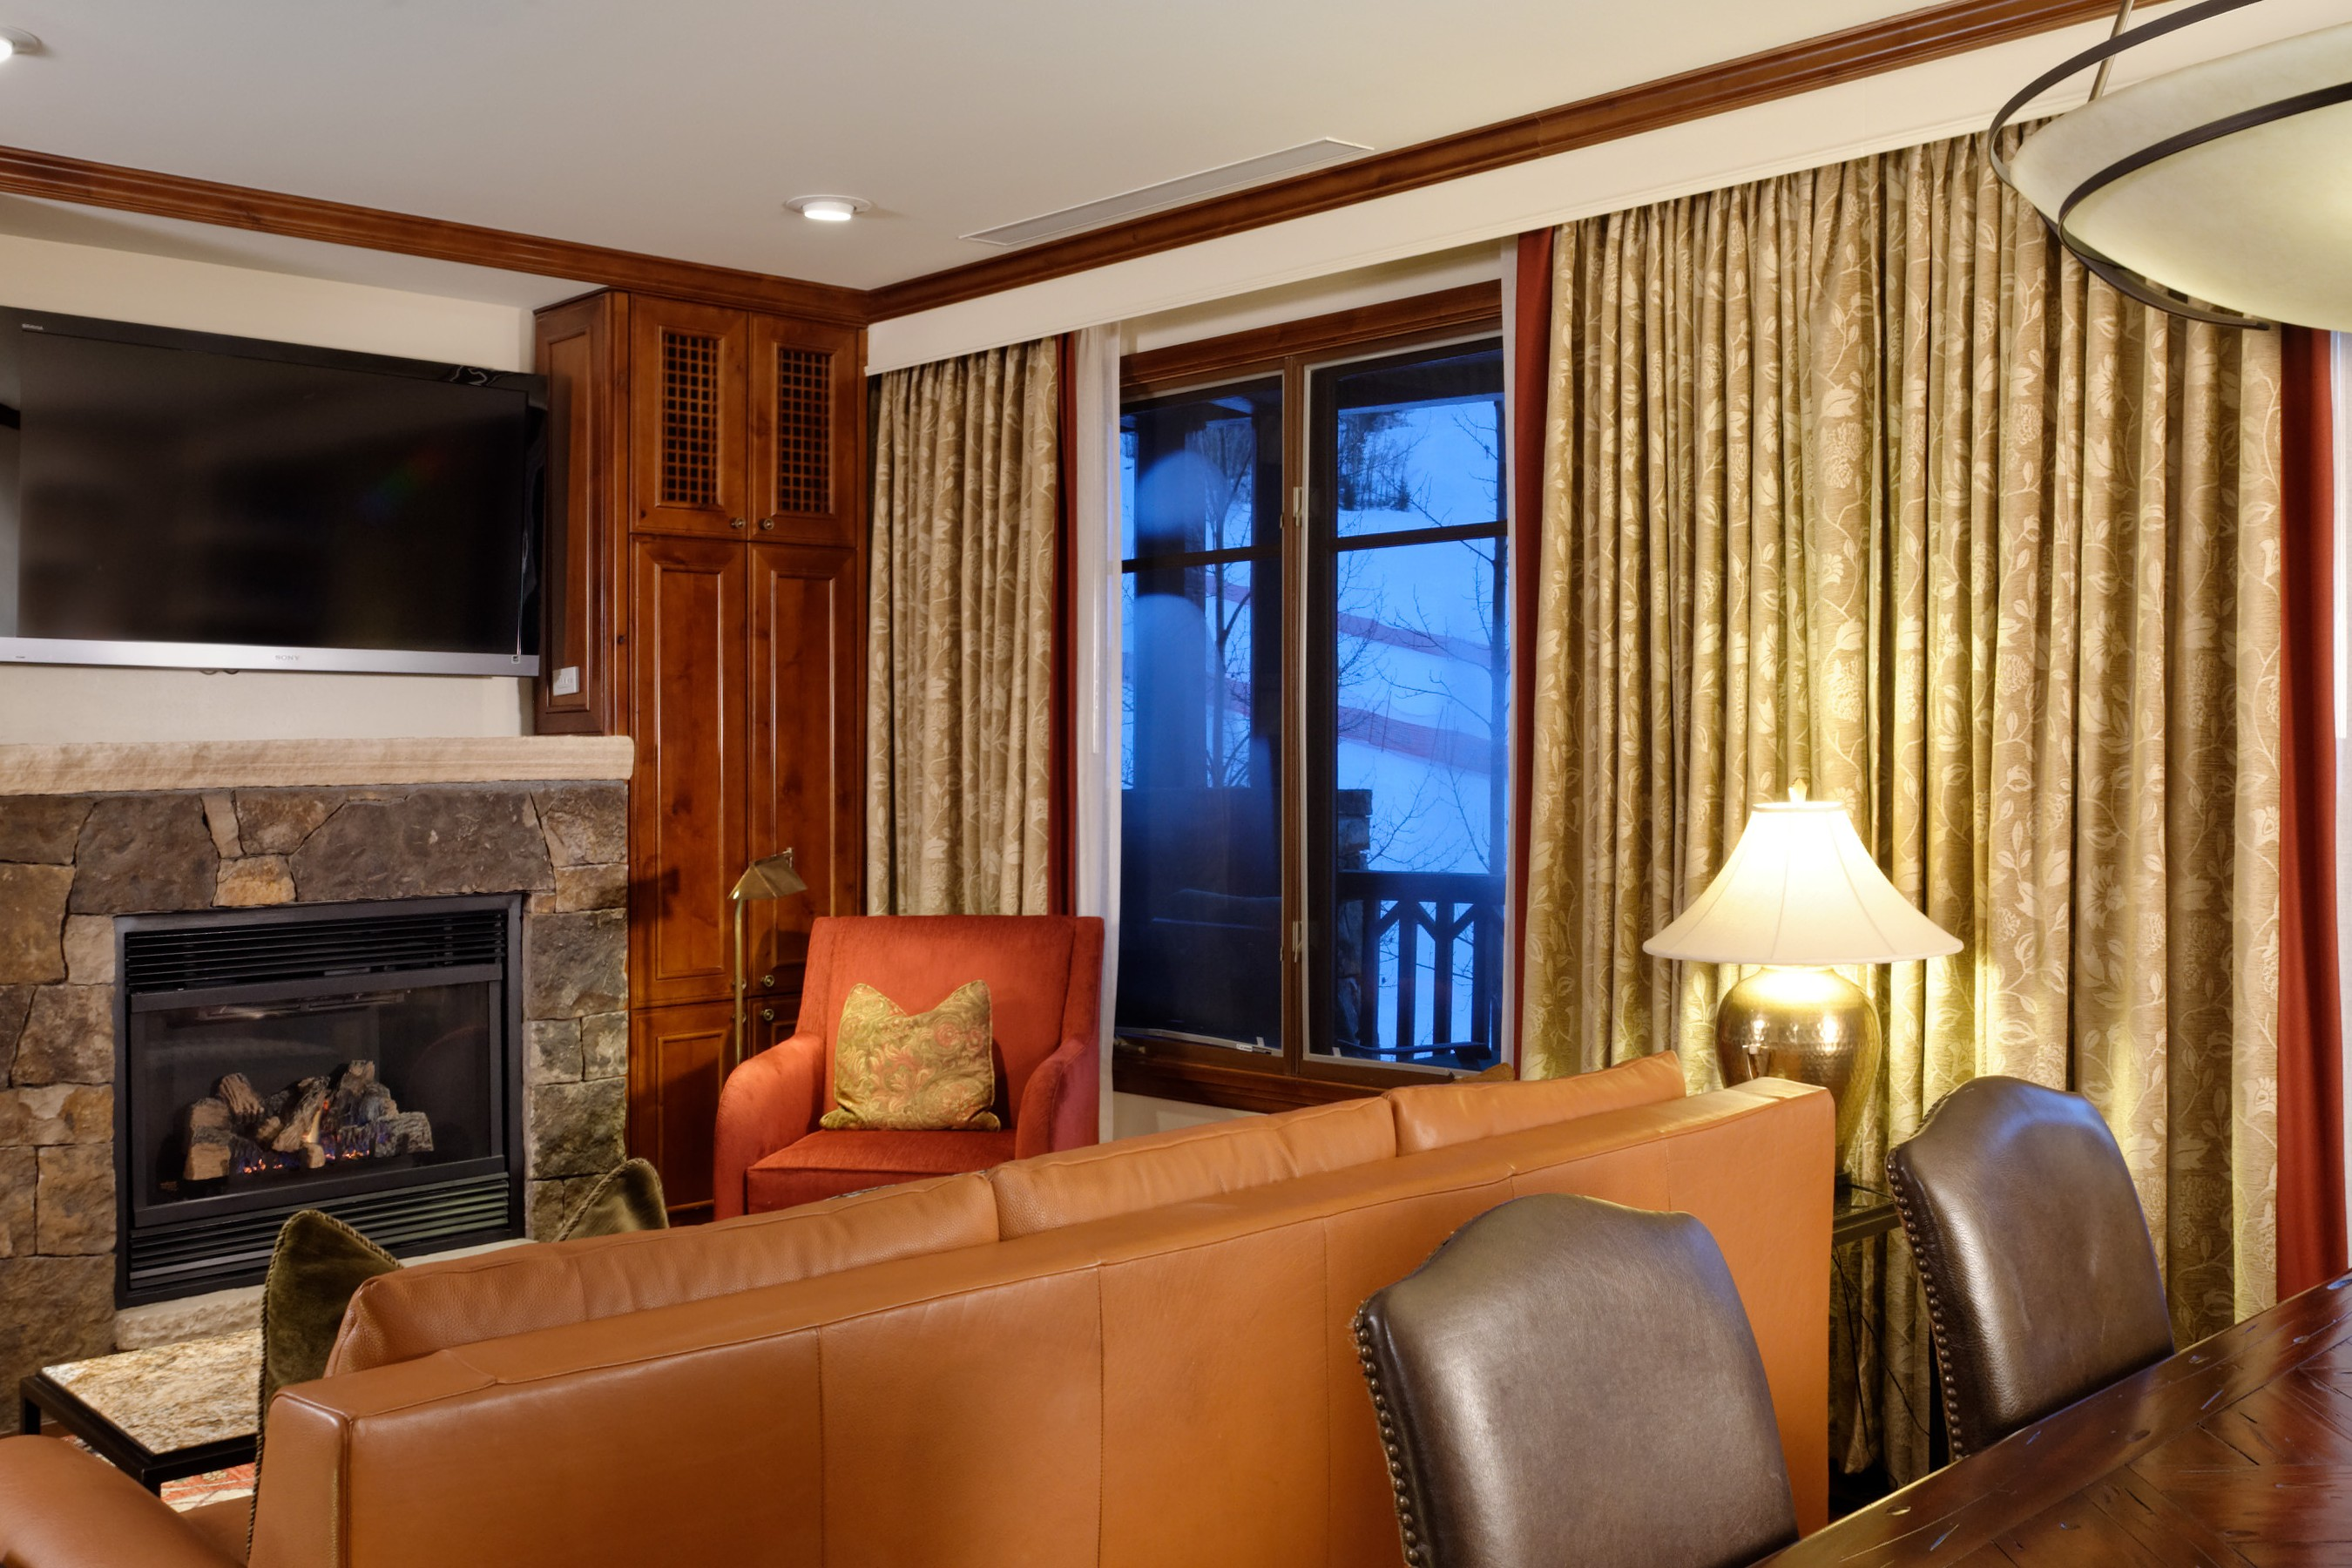 Fractional Ownership for Sale at Ritz-Carlton Club Aspen Highlands Fractional Condo Interes 0197 Prospector Road, 2304, Winter Interest 22, 35, & 48 Ritz- Aspen, Colorado, 81611 United States